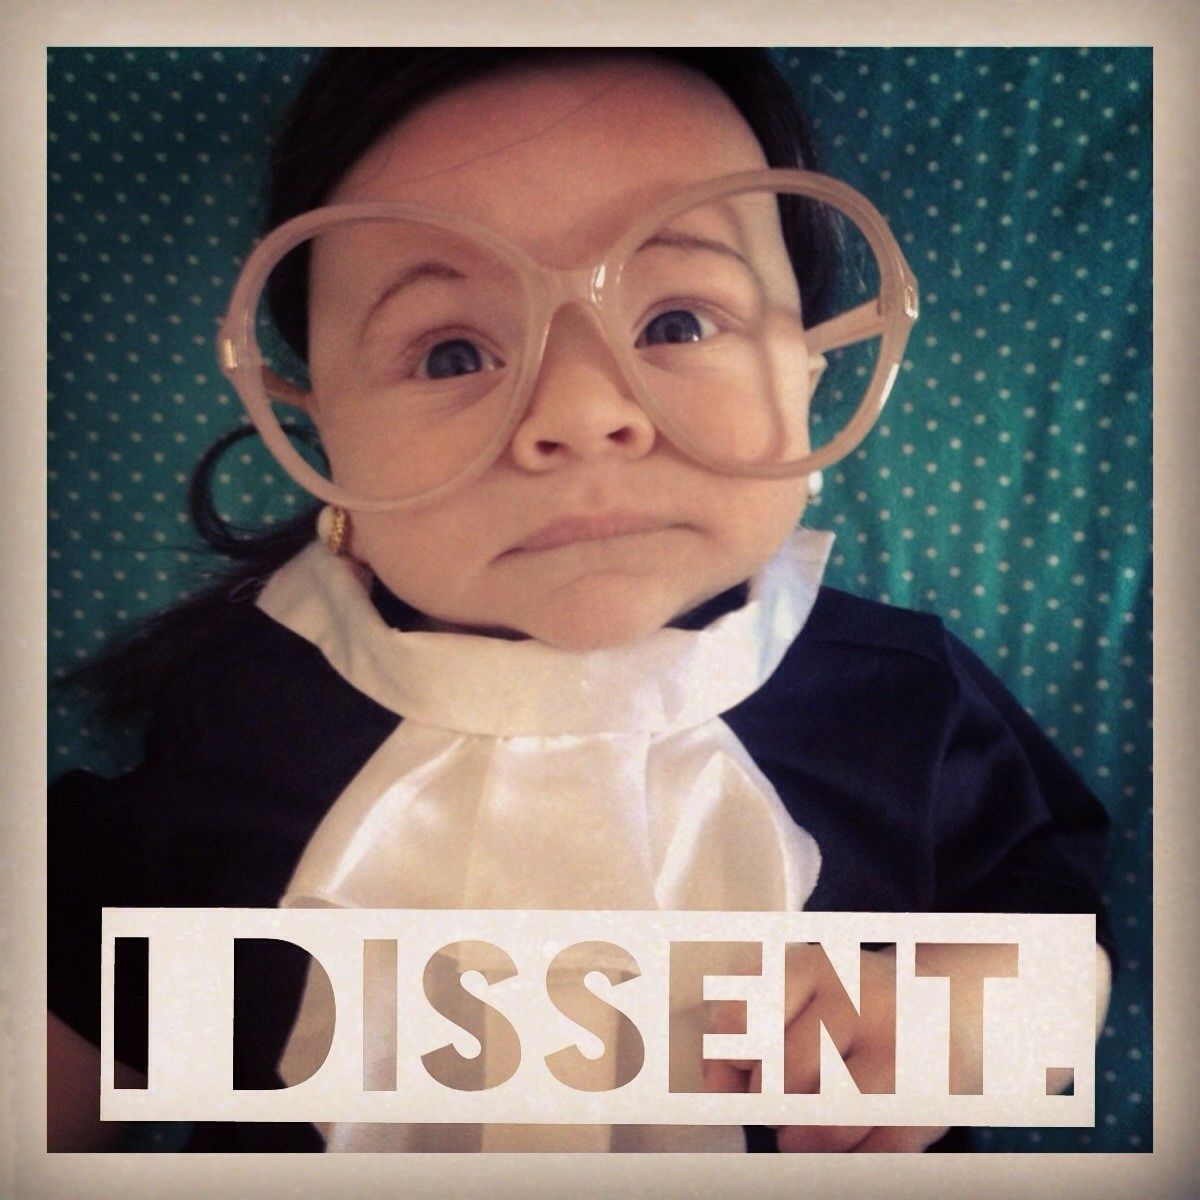 Baby's Halloween costume does Ruth Bader Ginsburg justice